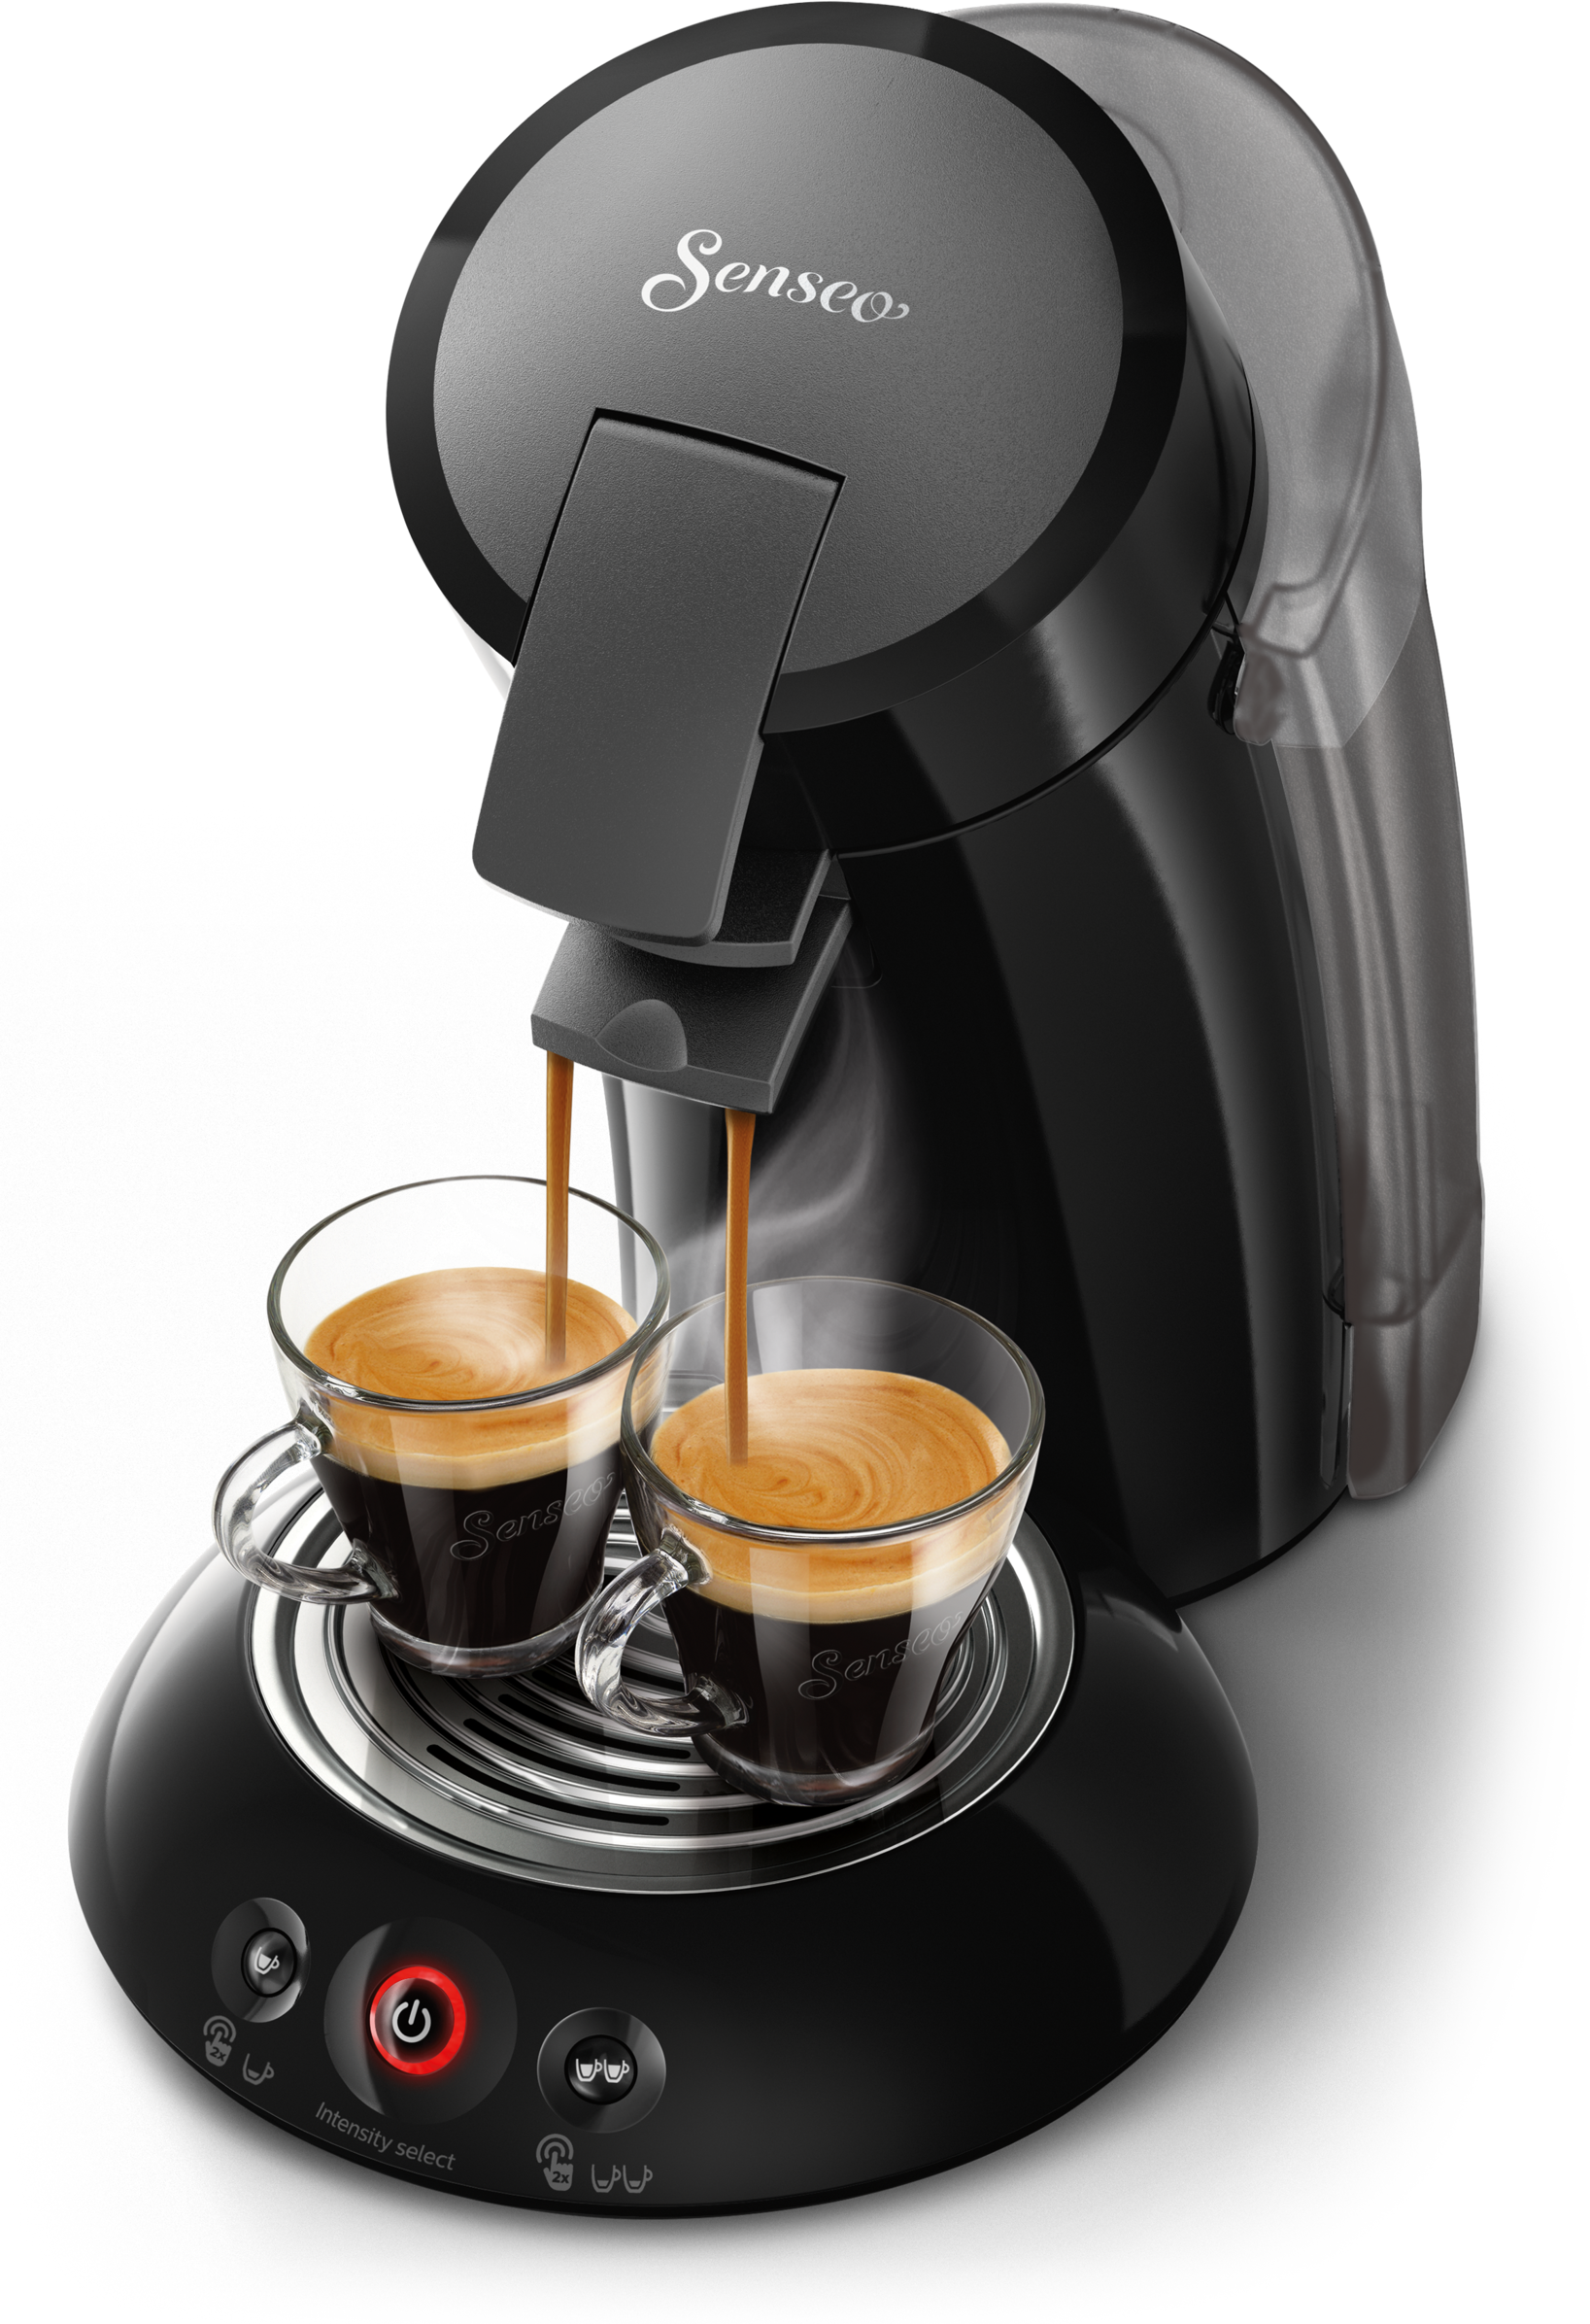 senseo but pod coffee brewer everyone loves pod brewer but which one is the best pod coffee. Black Bedroom Furniture Sets. Home Design Ideas